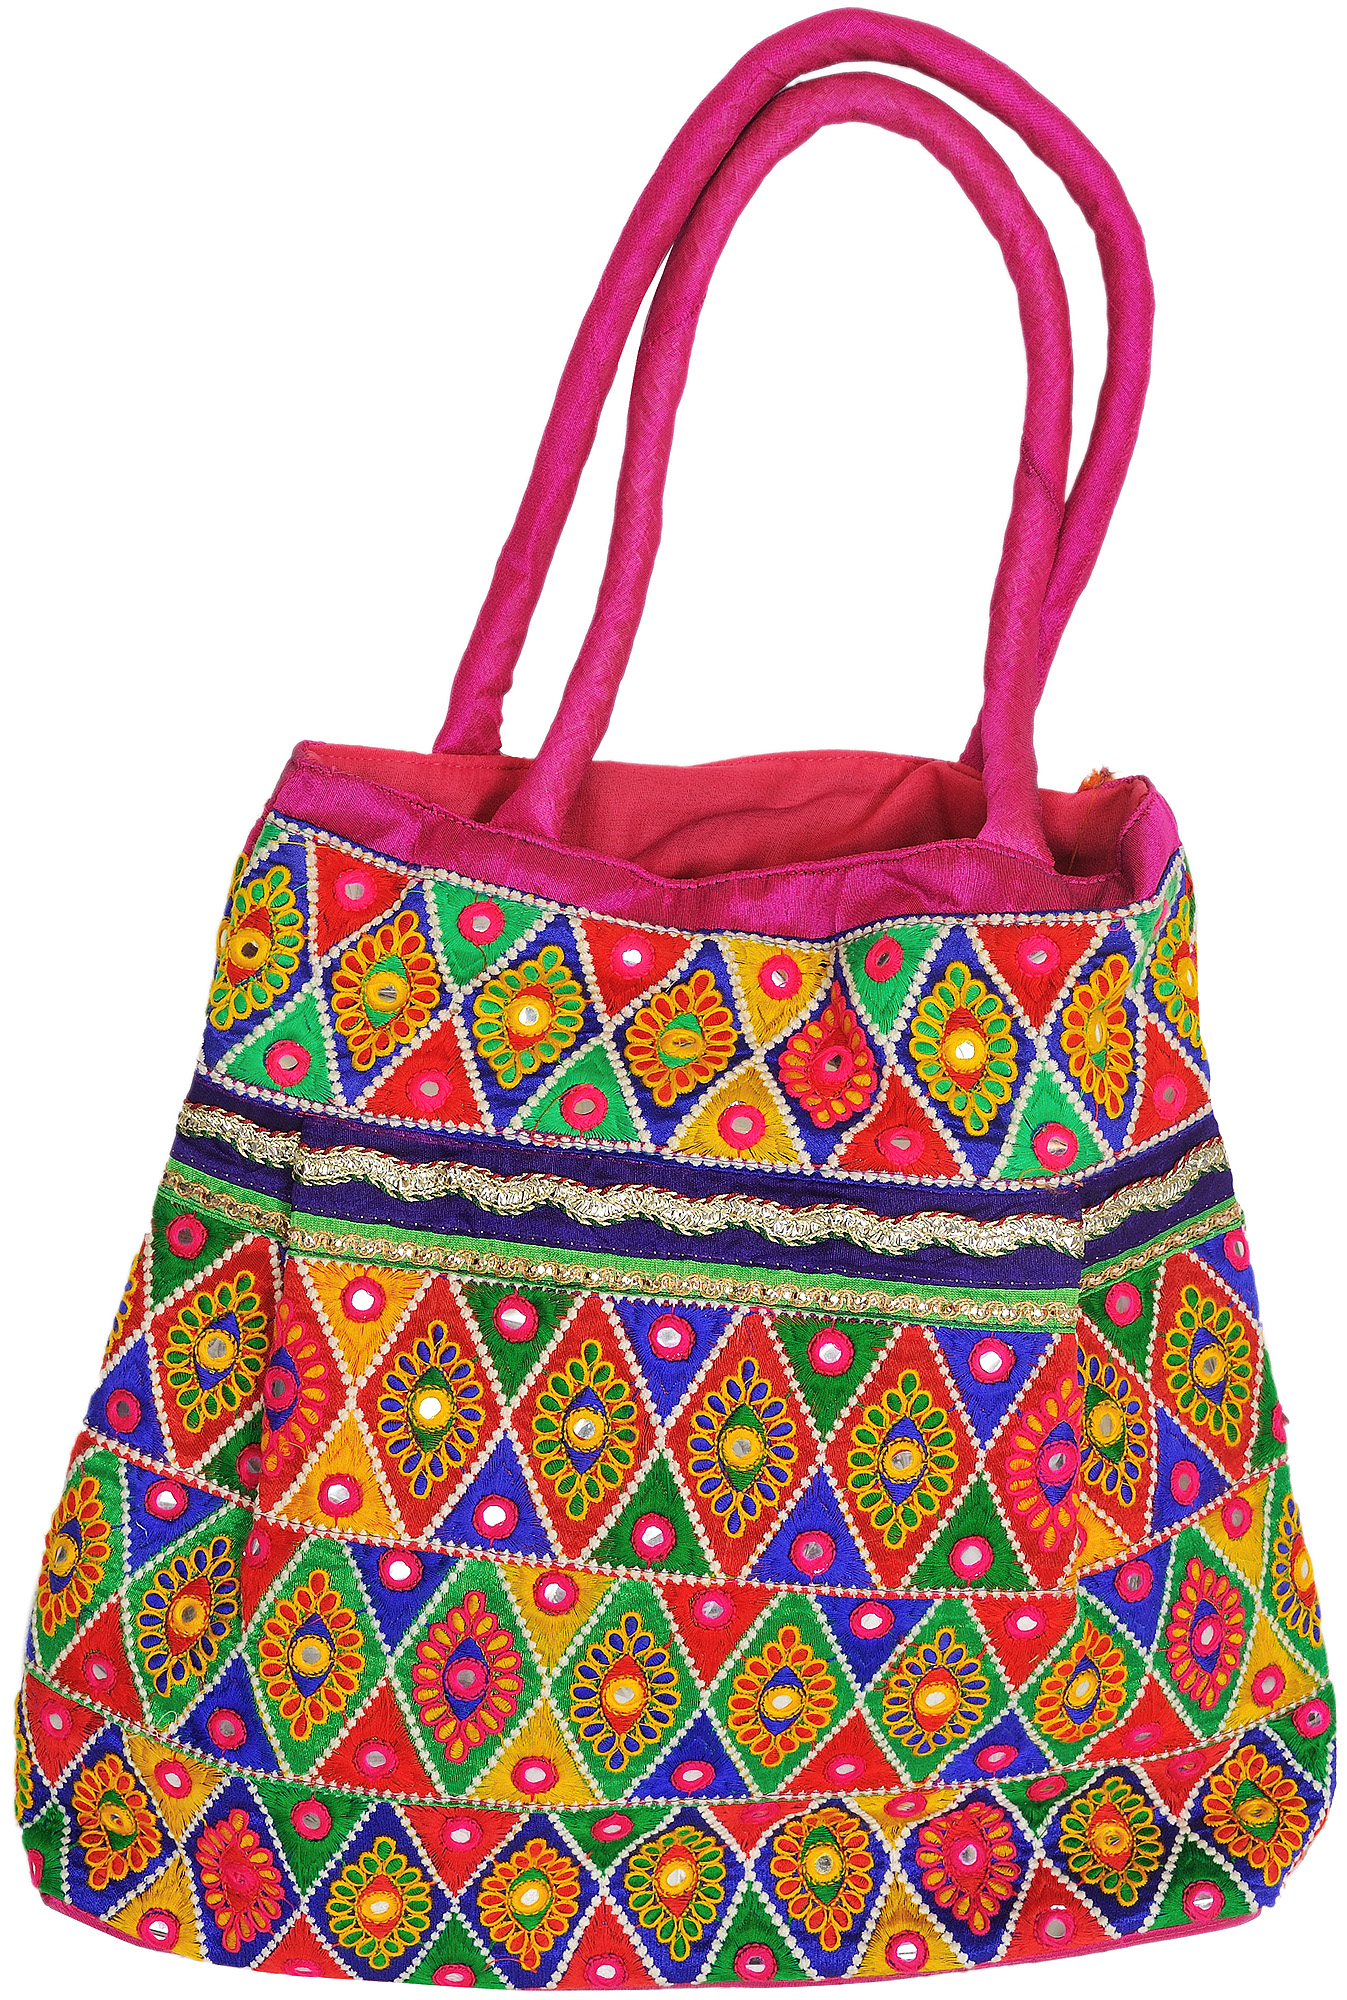 Multi color shopper bag from kutch with floral embroidery